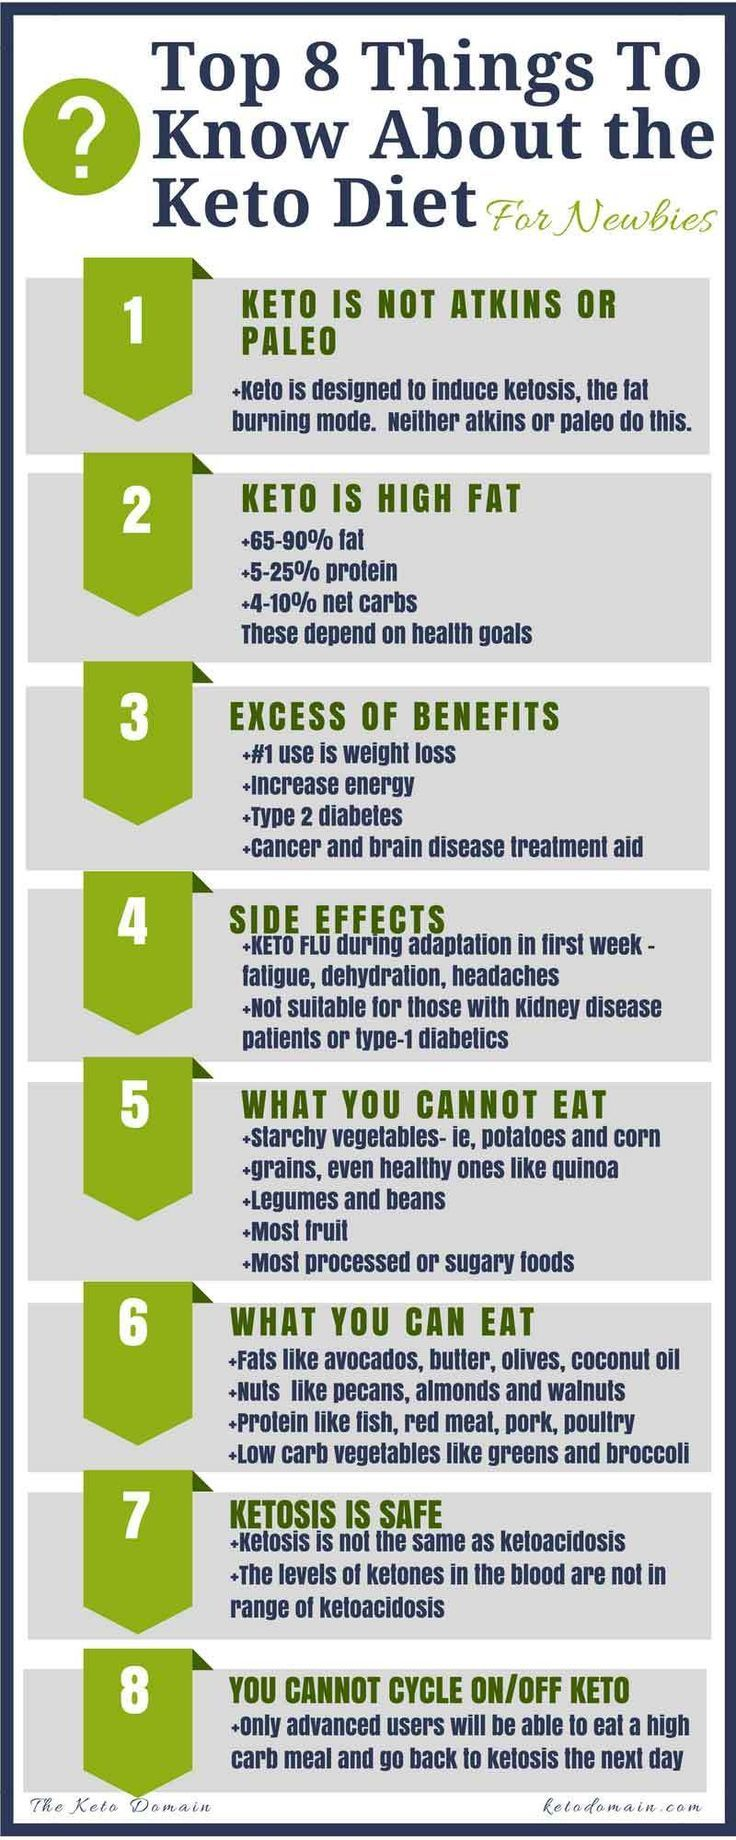 Keto Diet Plan: Top-8-Things-to-Know-About-Keto-Diet